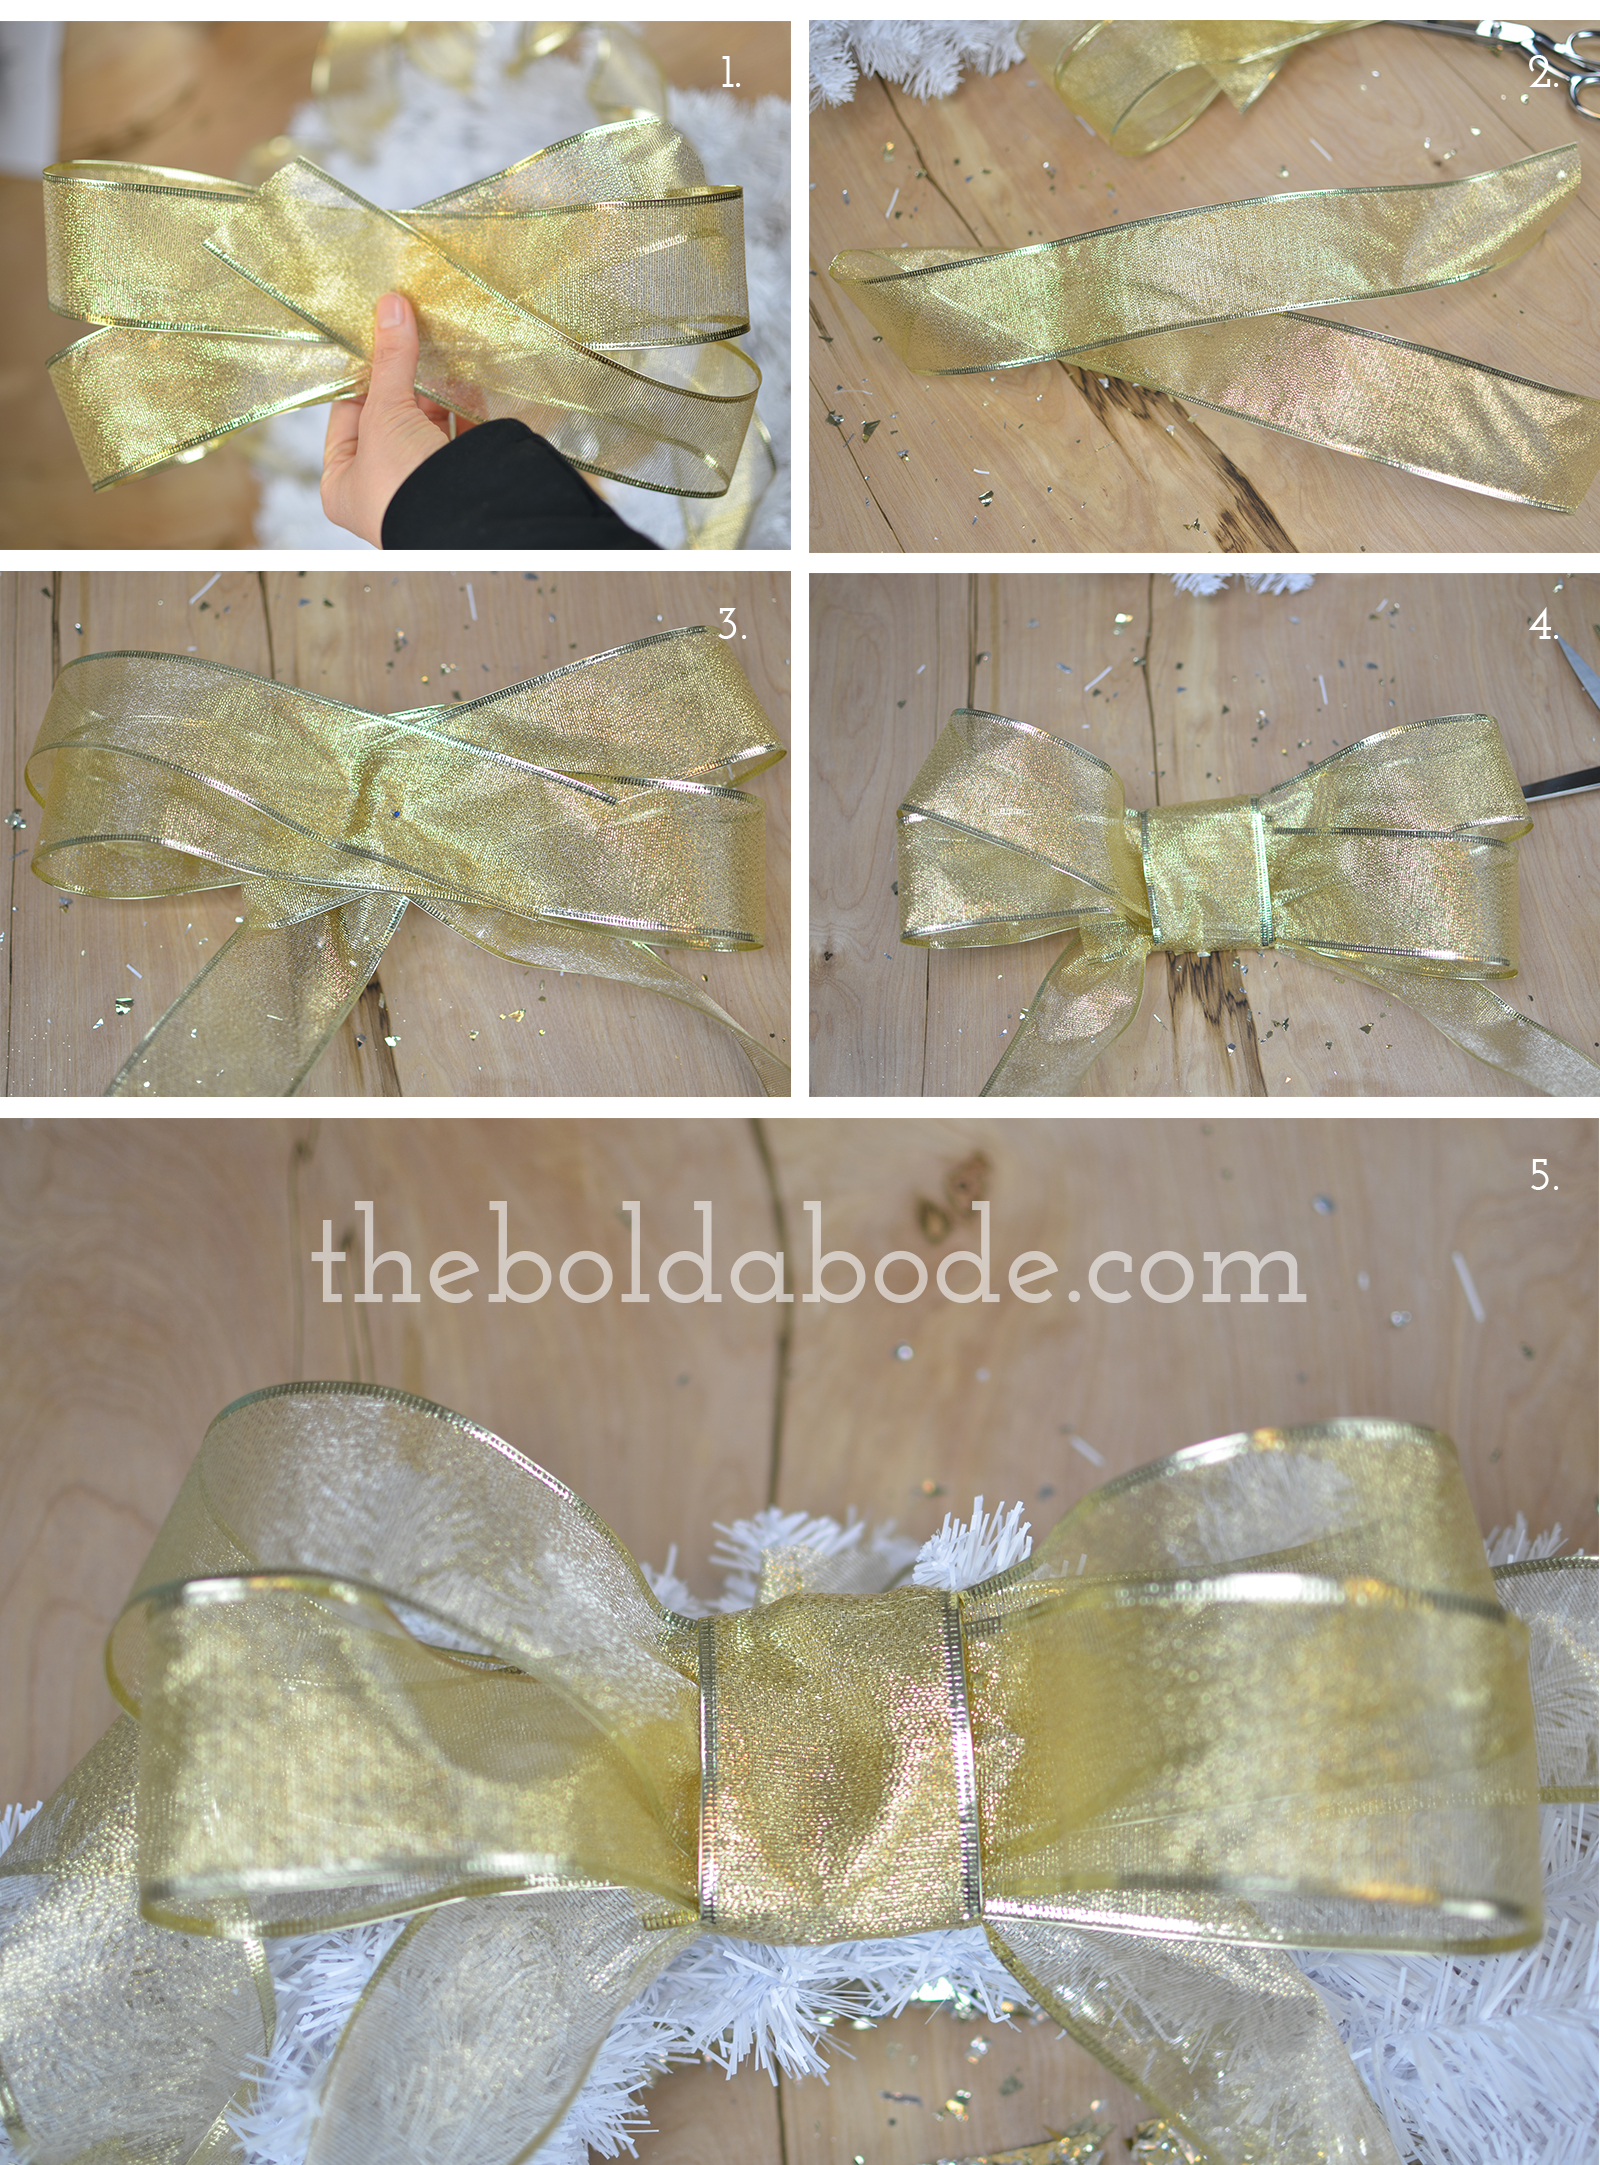 From theboldabode.com: Wrap your ribbon twice to make a double loop and pin with a straight pin. Cut a piece of ribbon for your ends and loop as shown. Pin your ends to the back of the bow. Wrap a small piece of ribbon around the loops and the ends. Attach to your wreath or other DIY project.